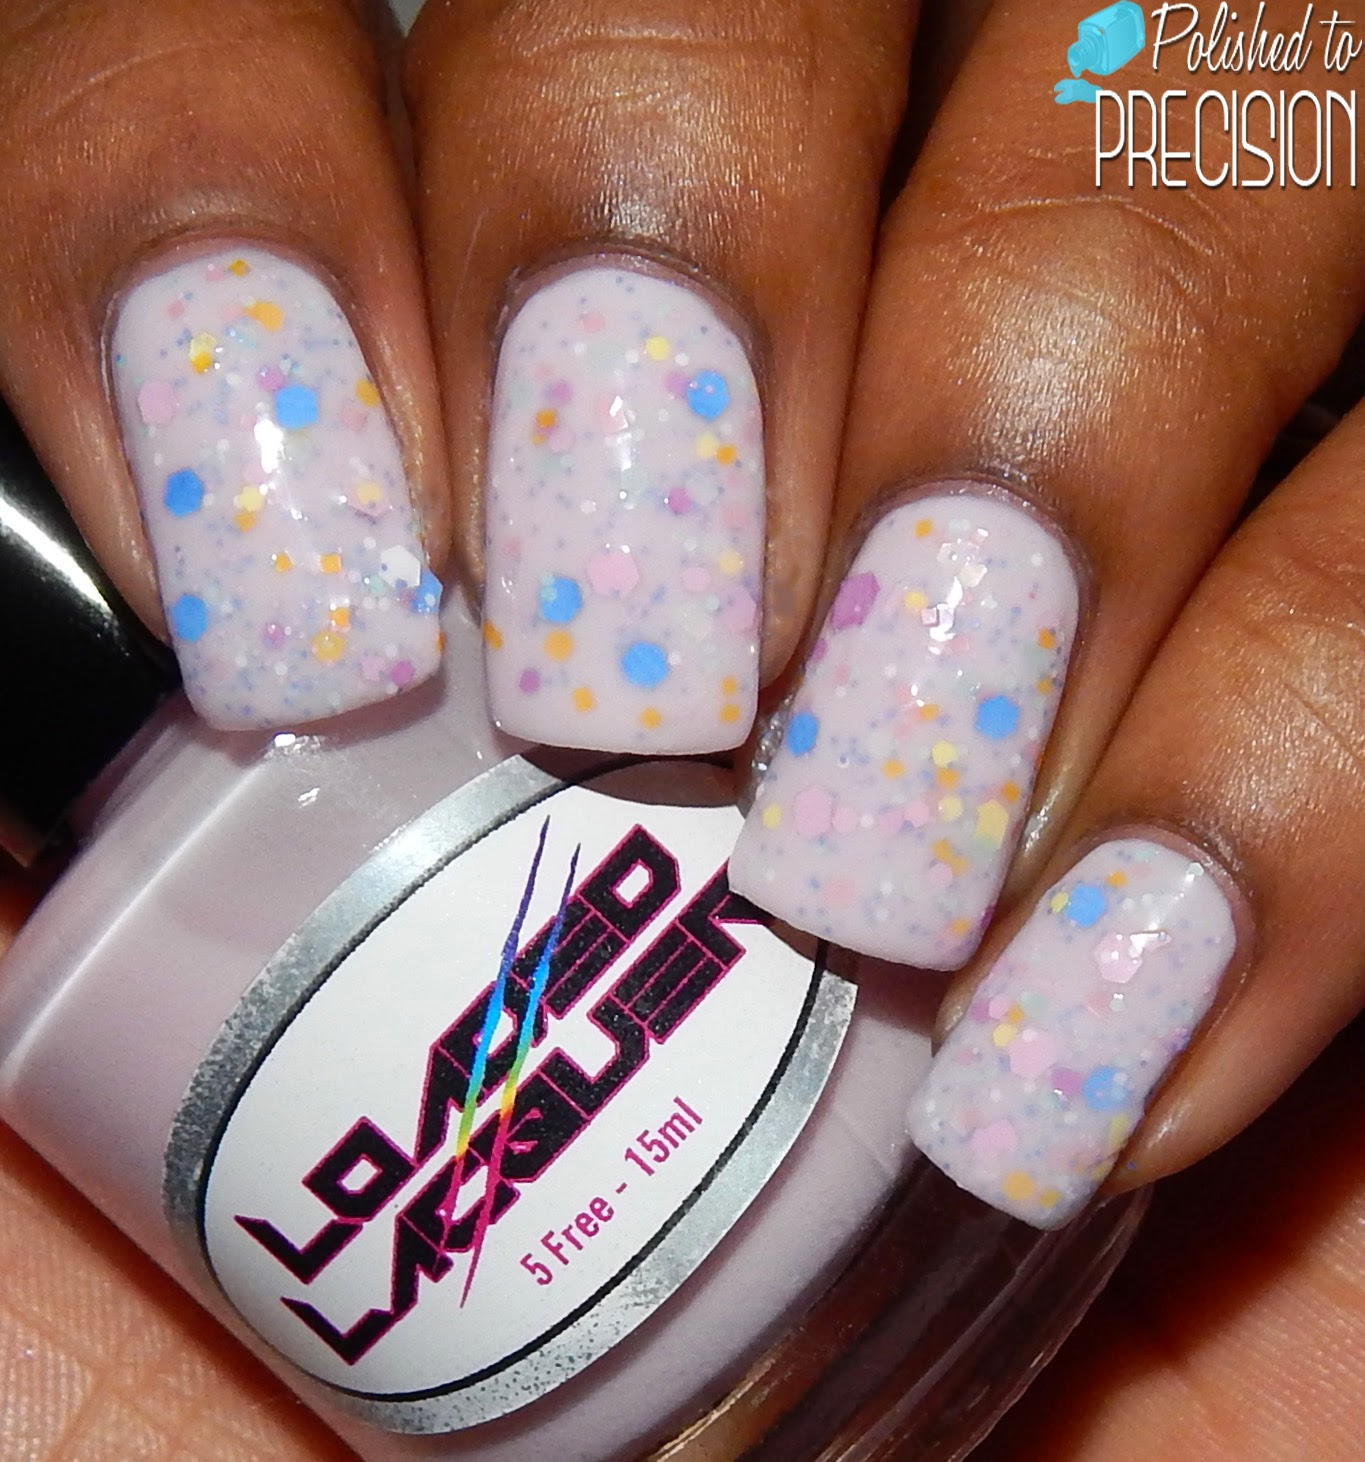 Loaded Lacquer No Bra and Fluffly Macaroons Jelly Sammich